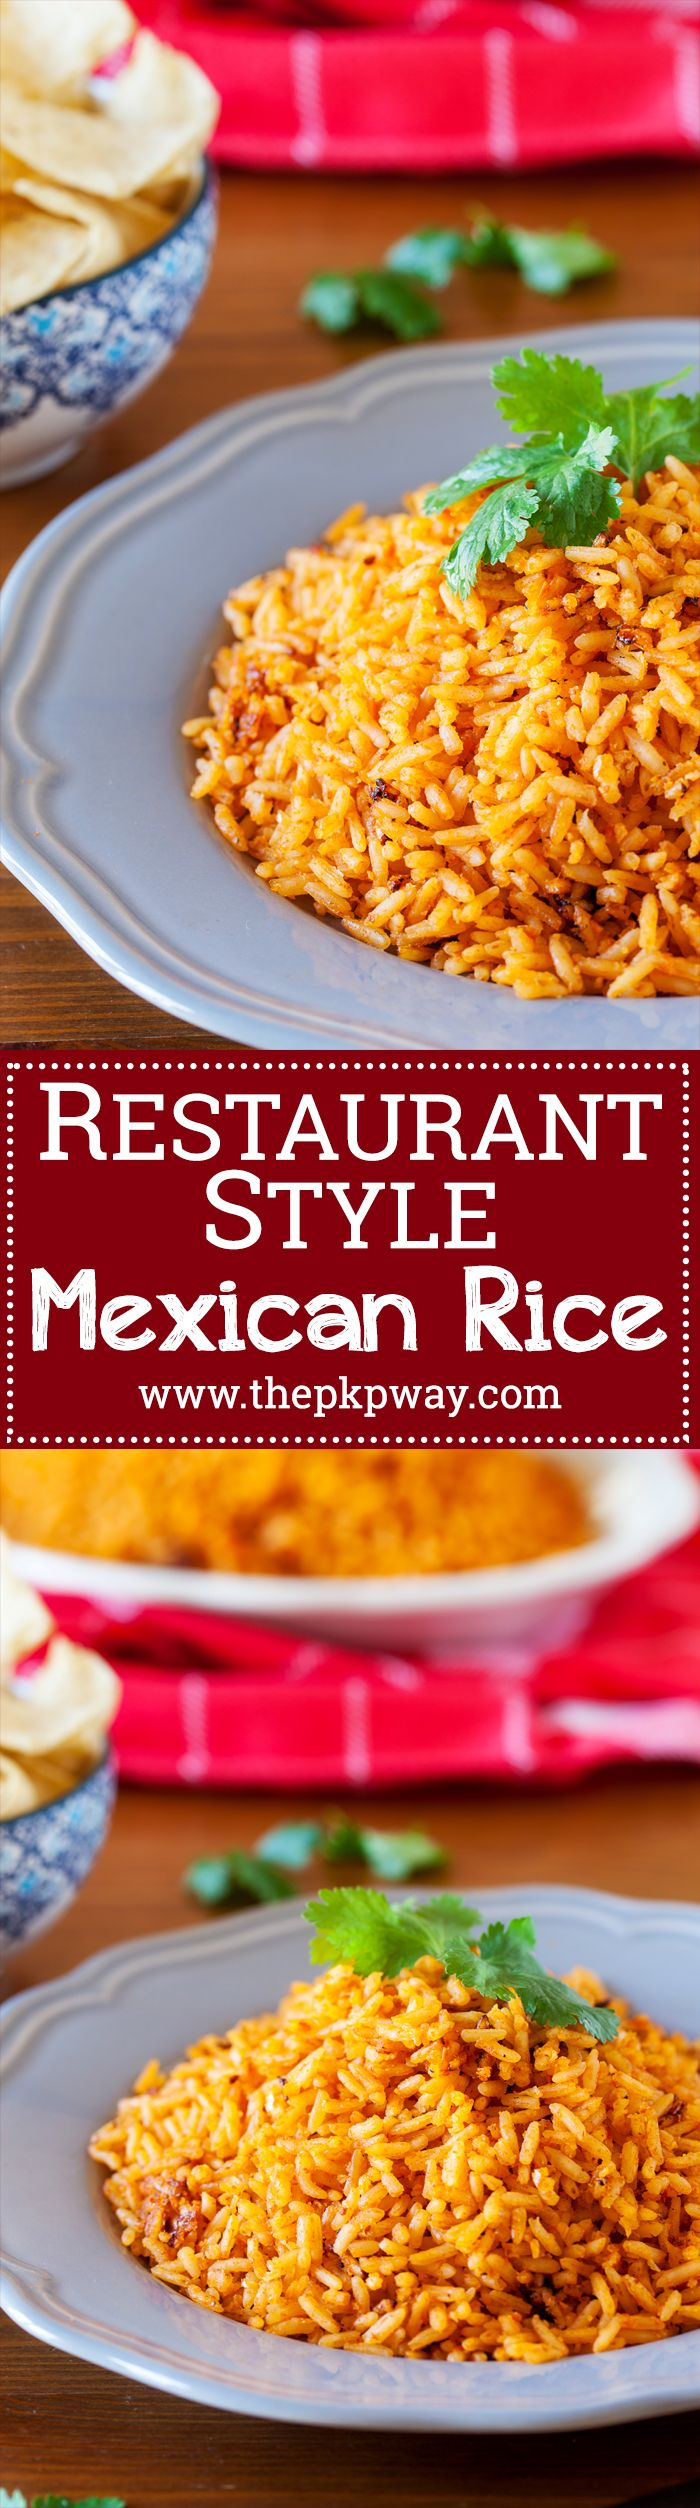 17592 best best food blogger recipes images on pinterest cooking restaurant style mexican rice why settle for just a scoop as a side when you forumfinder Gallery